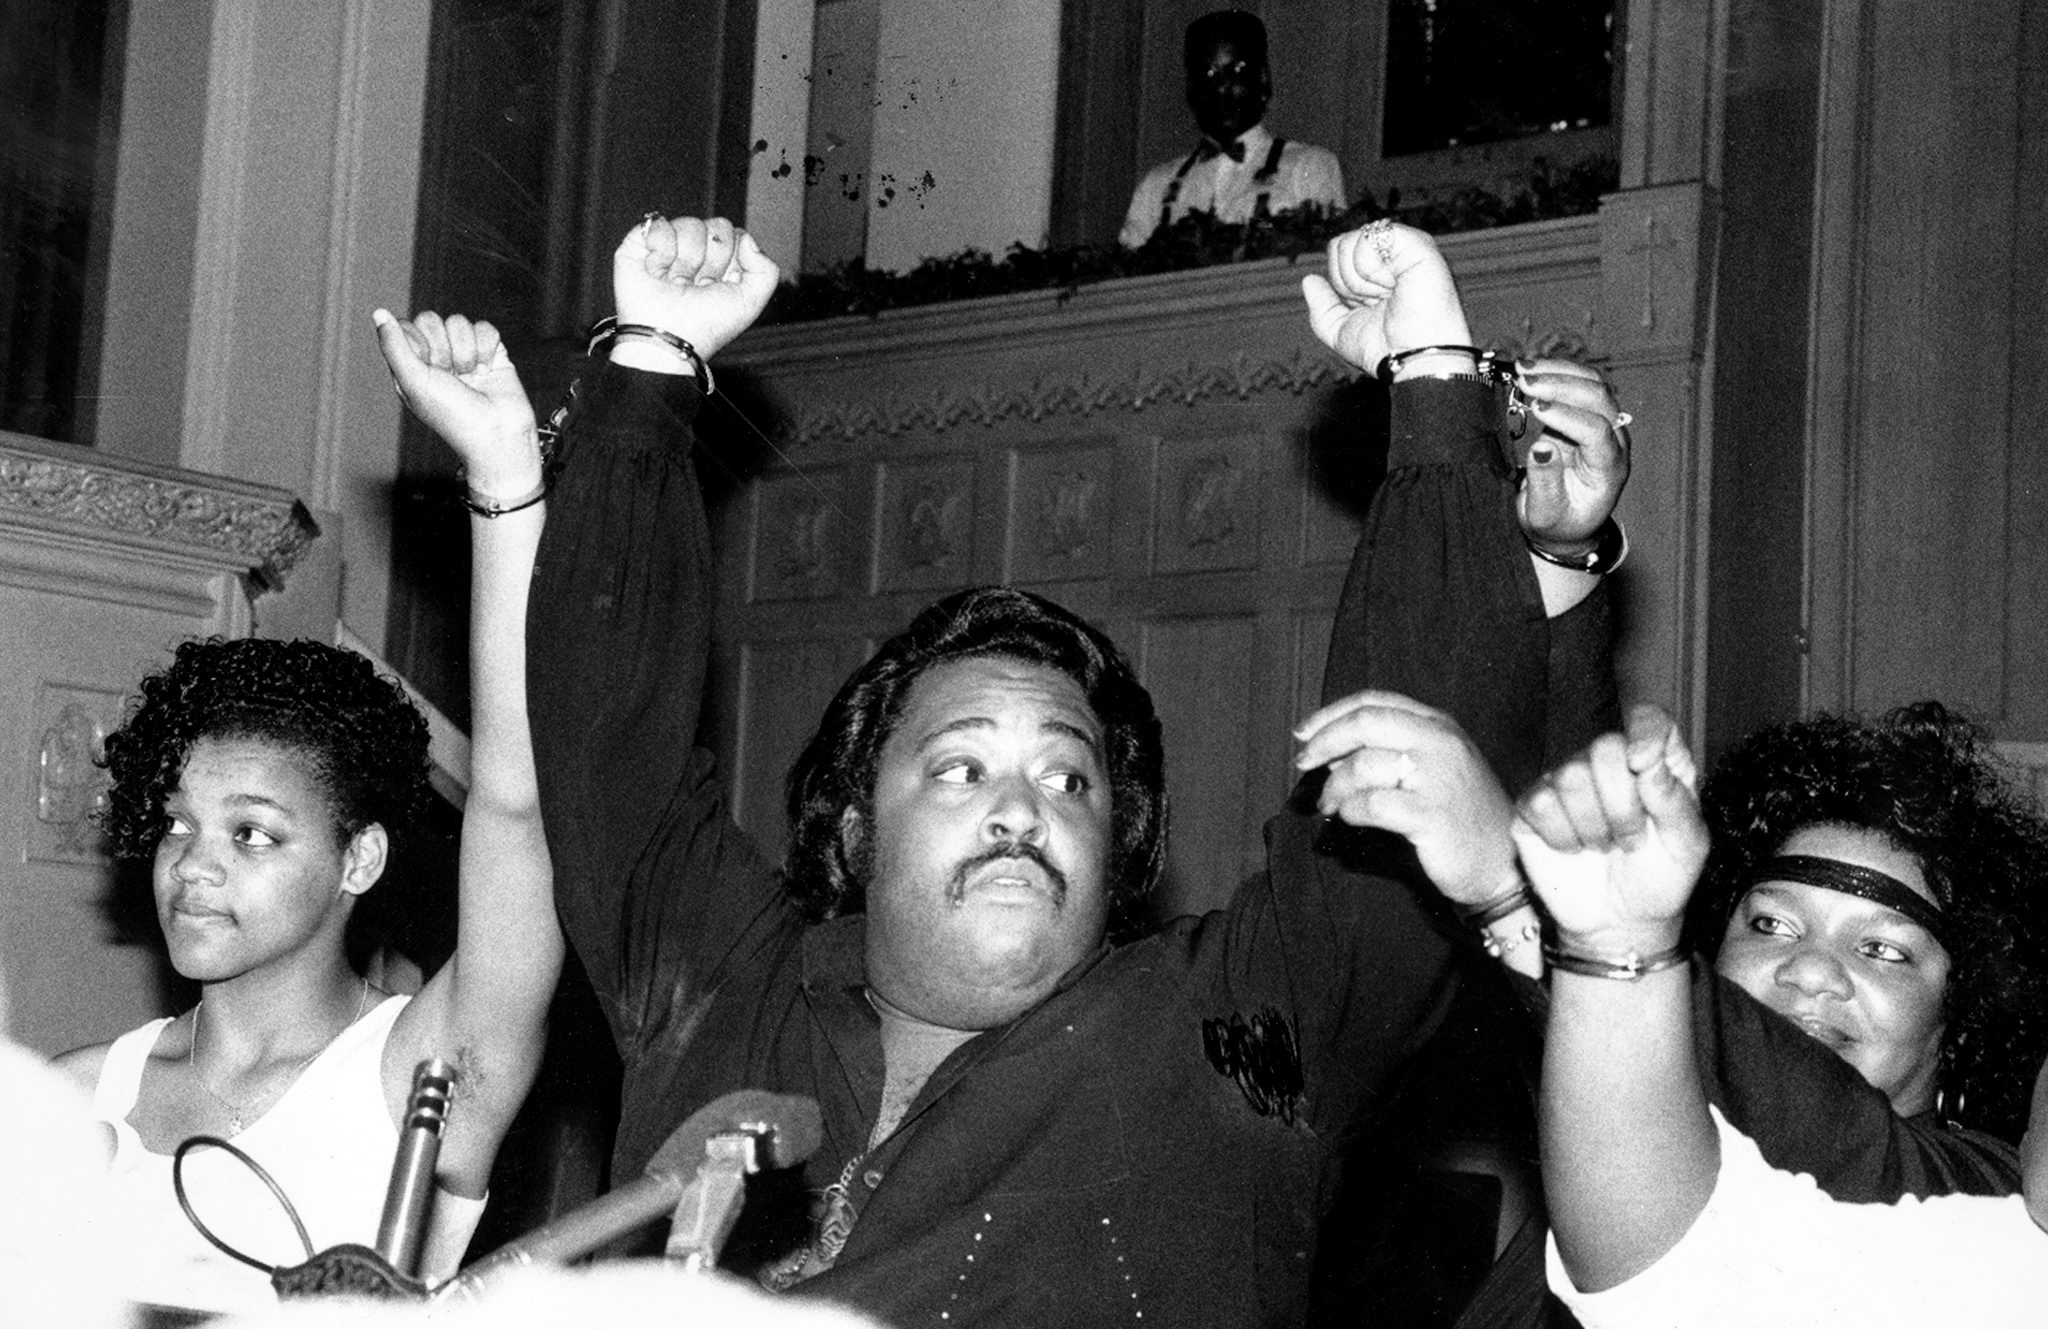 From left: Tawana Brawley, the Rev. Al Sharpton, and Glenda Brawley are handcuffed to one another as they prepare to leave church for a bus trip to Democratic Convention in Atlanta, July 16, 1988.